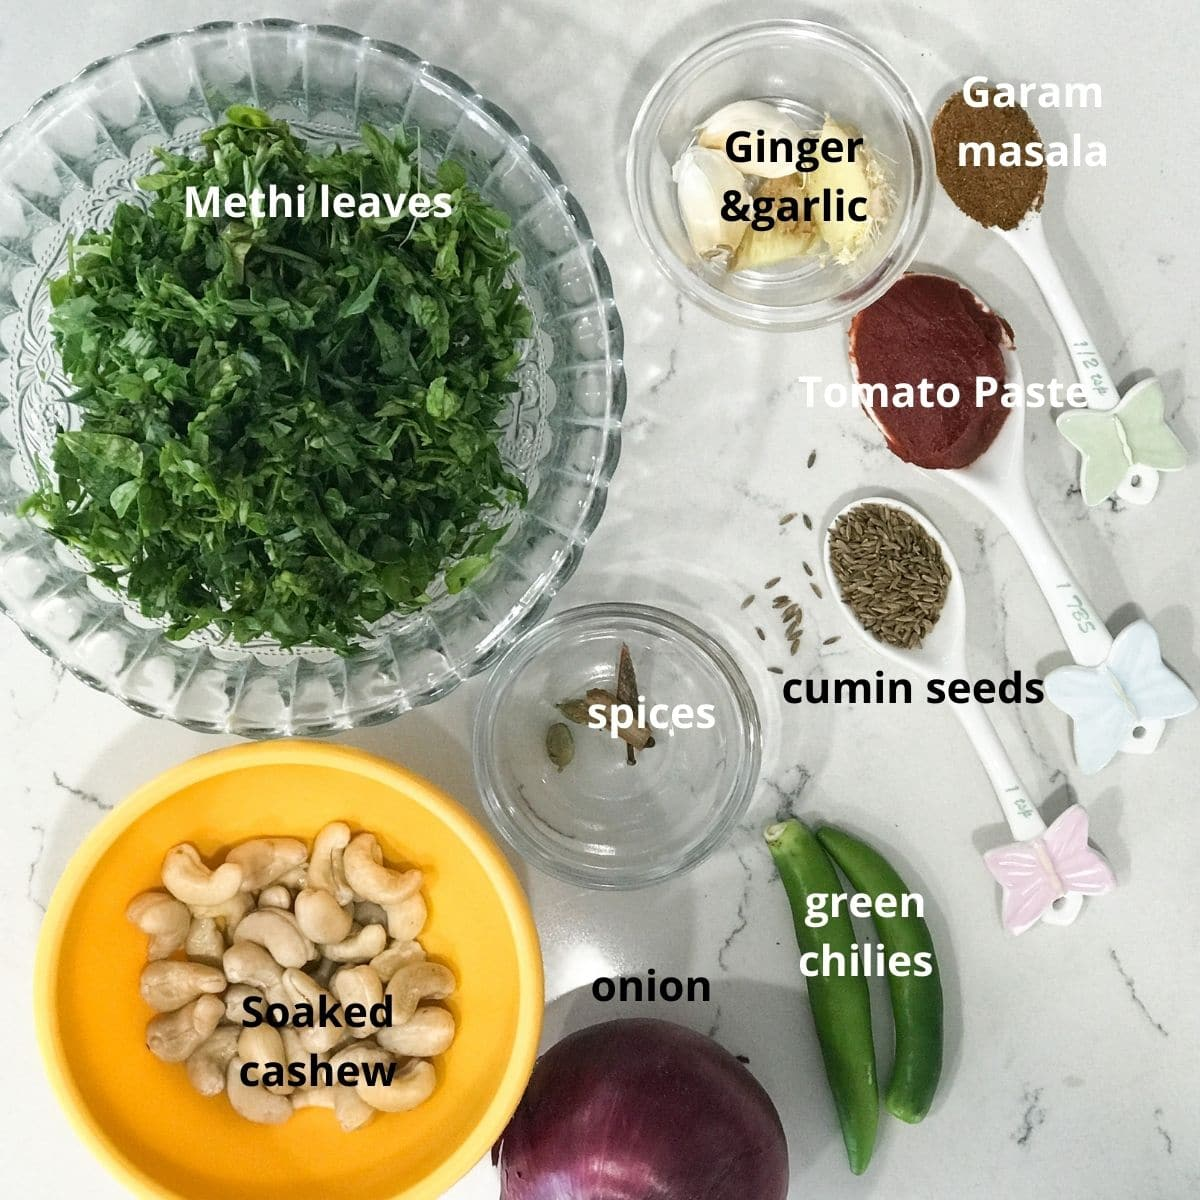 Many bowls are filled with ingredients for curry like methi leaves, soaked cashews, spices, and onion